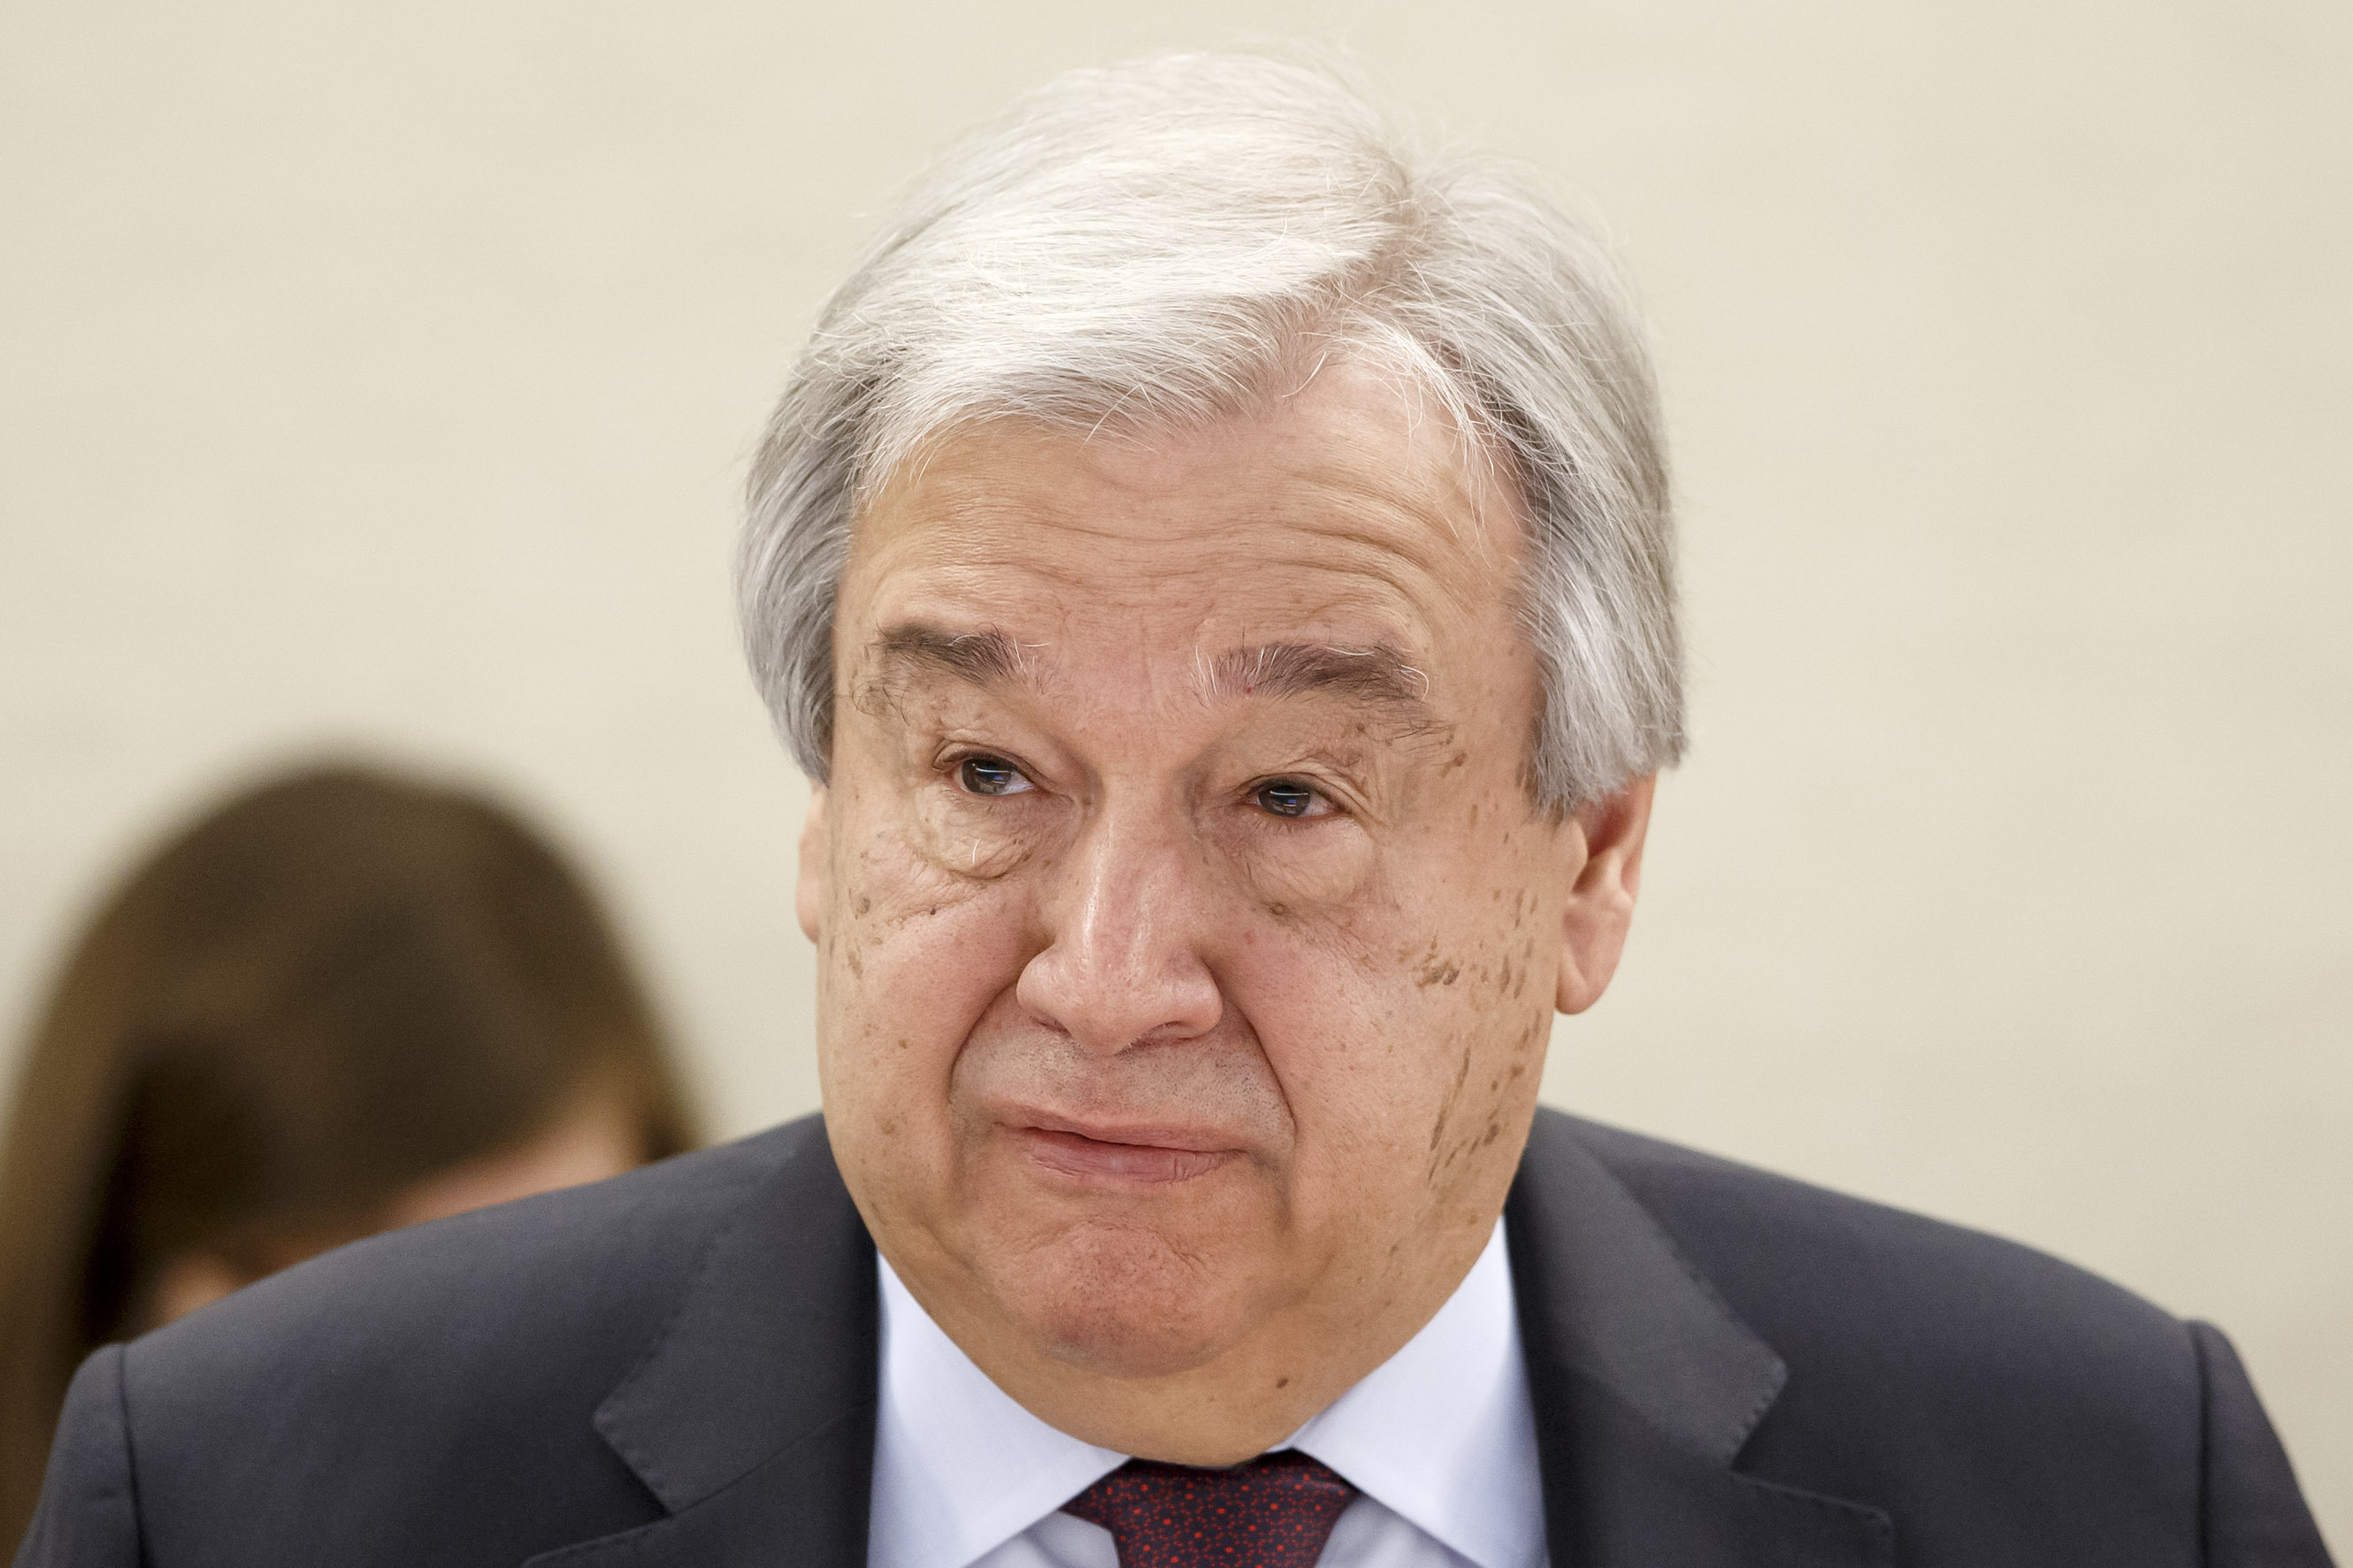 U.N. Secretary-General Antonio Guterres delivers a statement at the European headquarters of the United Nations in Geneva, Switzerland on Feb. 24, 2020.